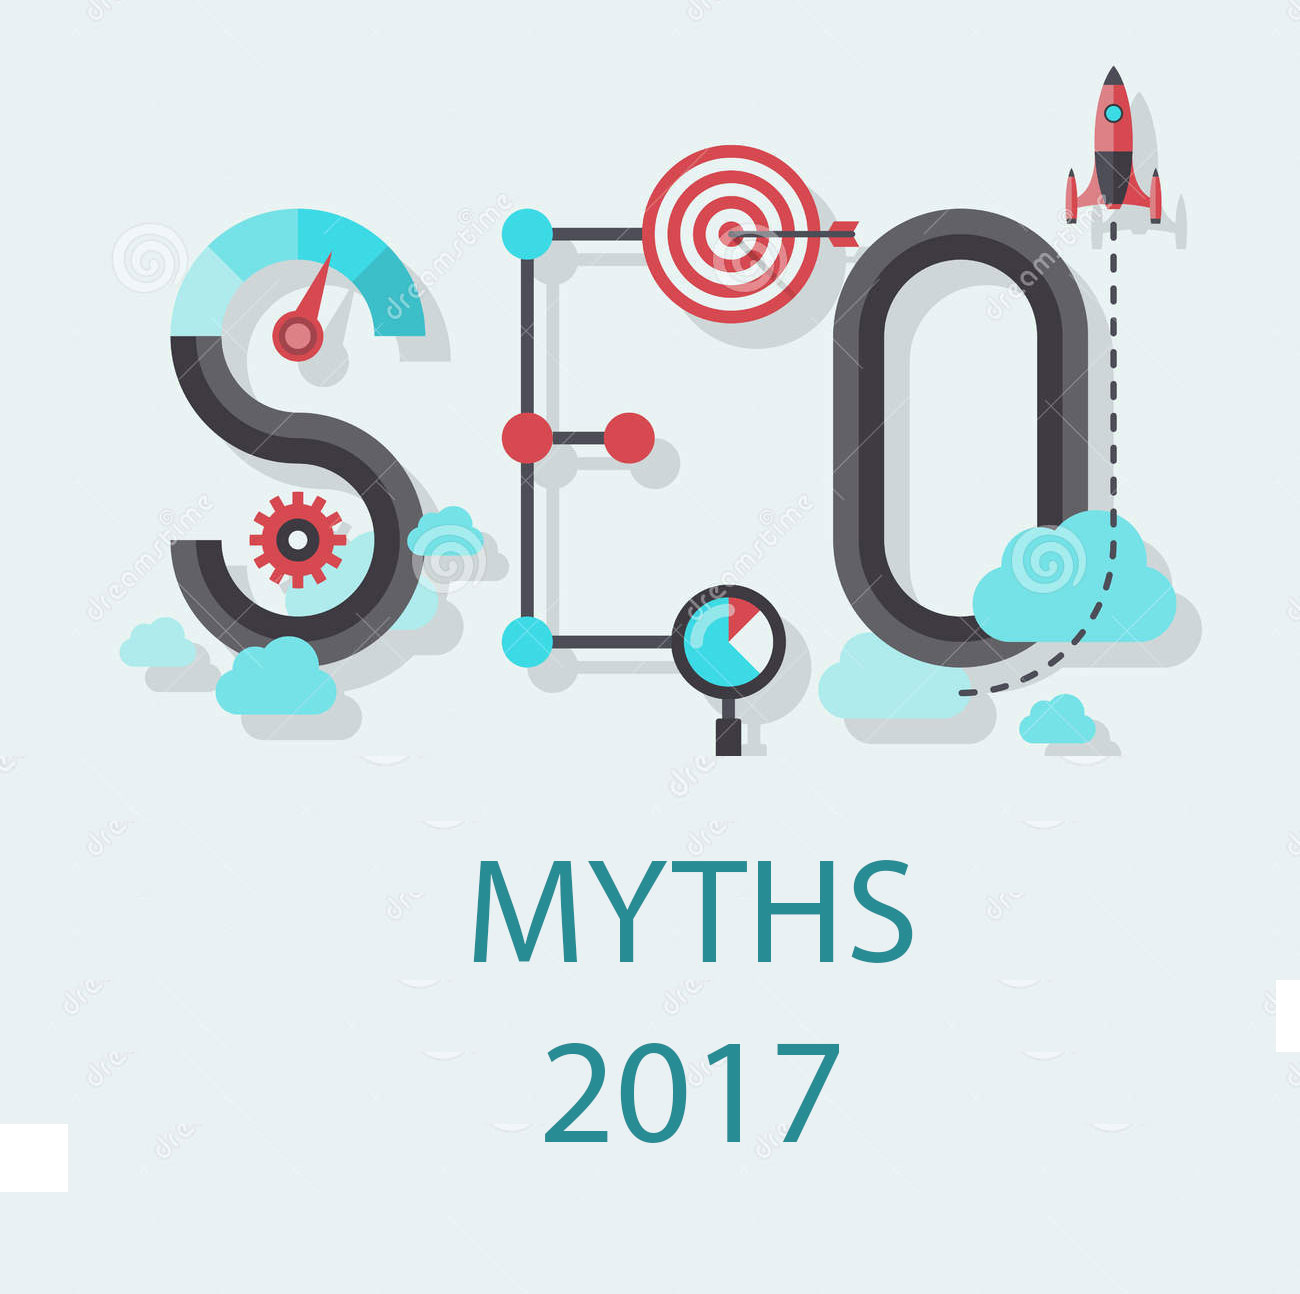 SEO Myths in 2017